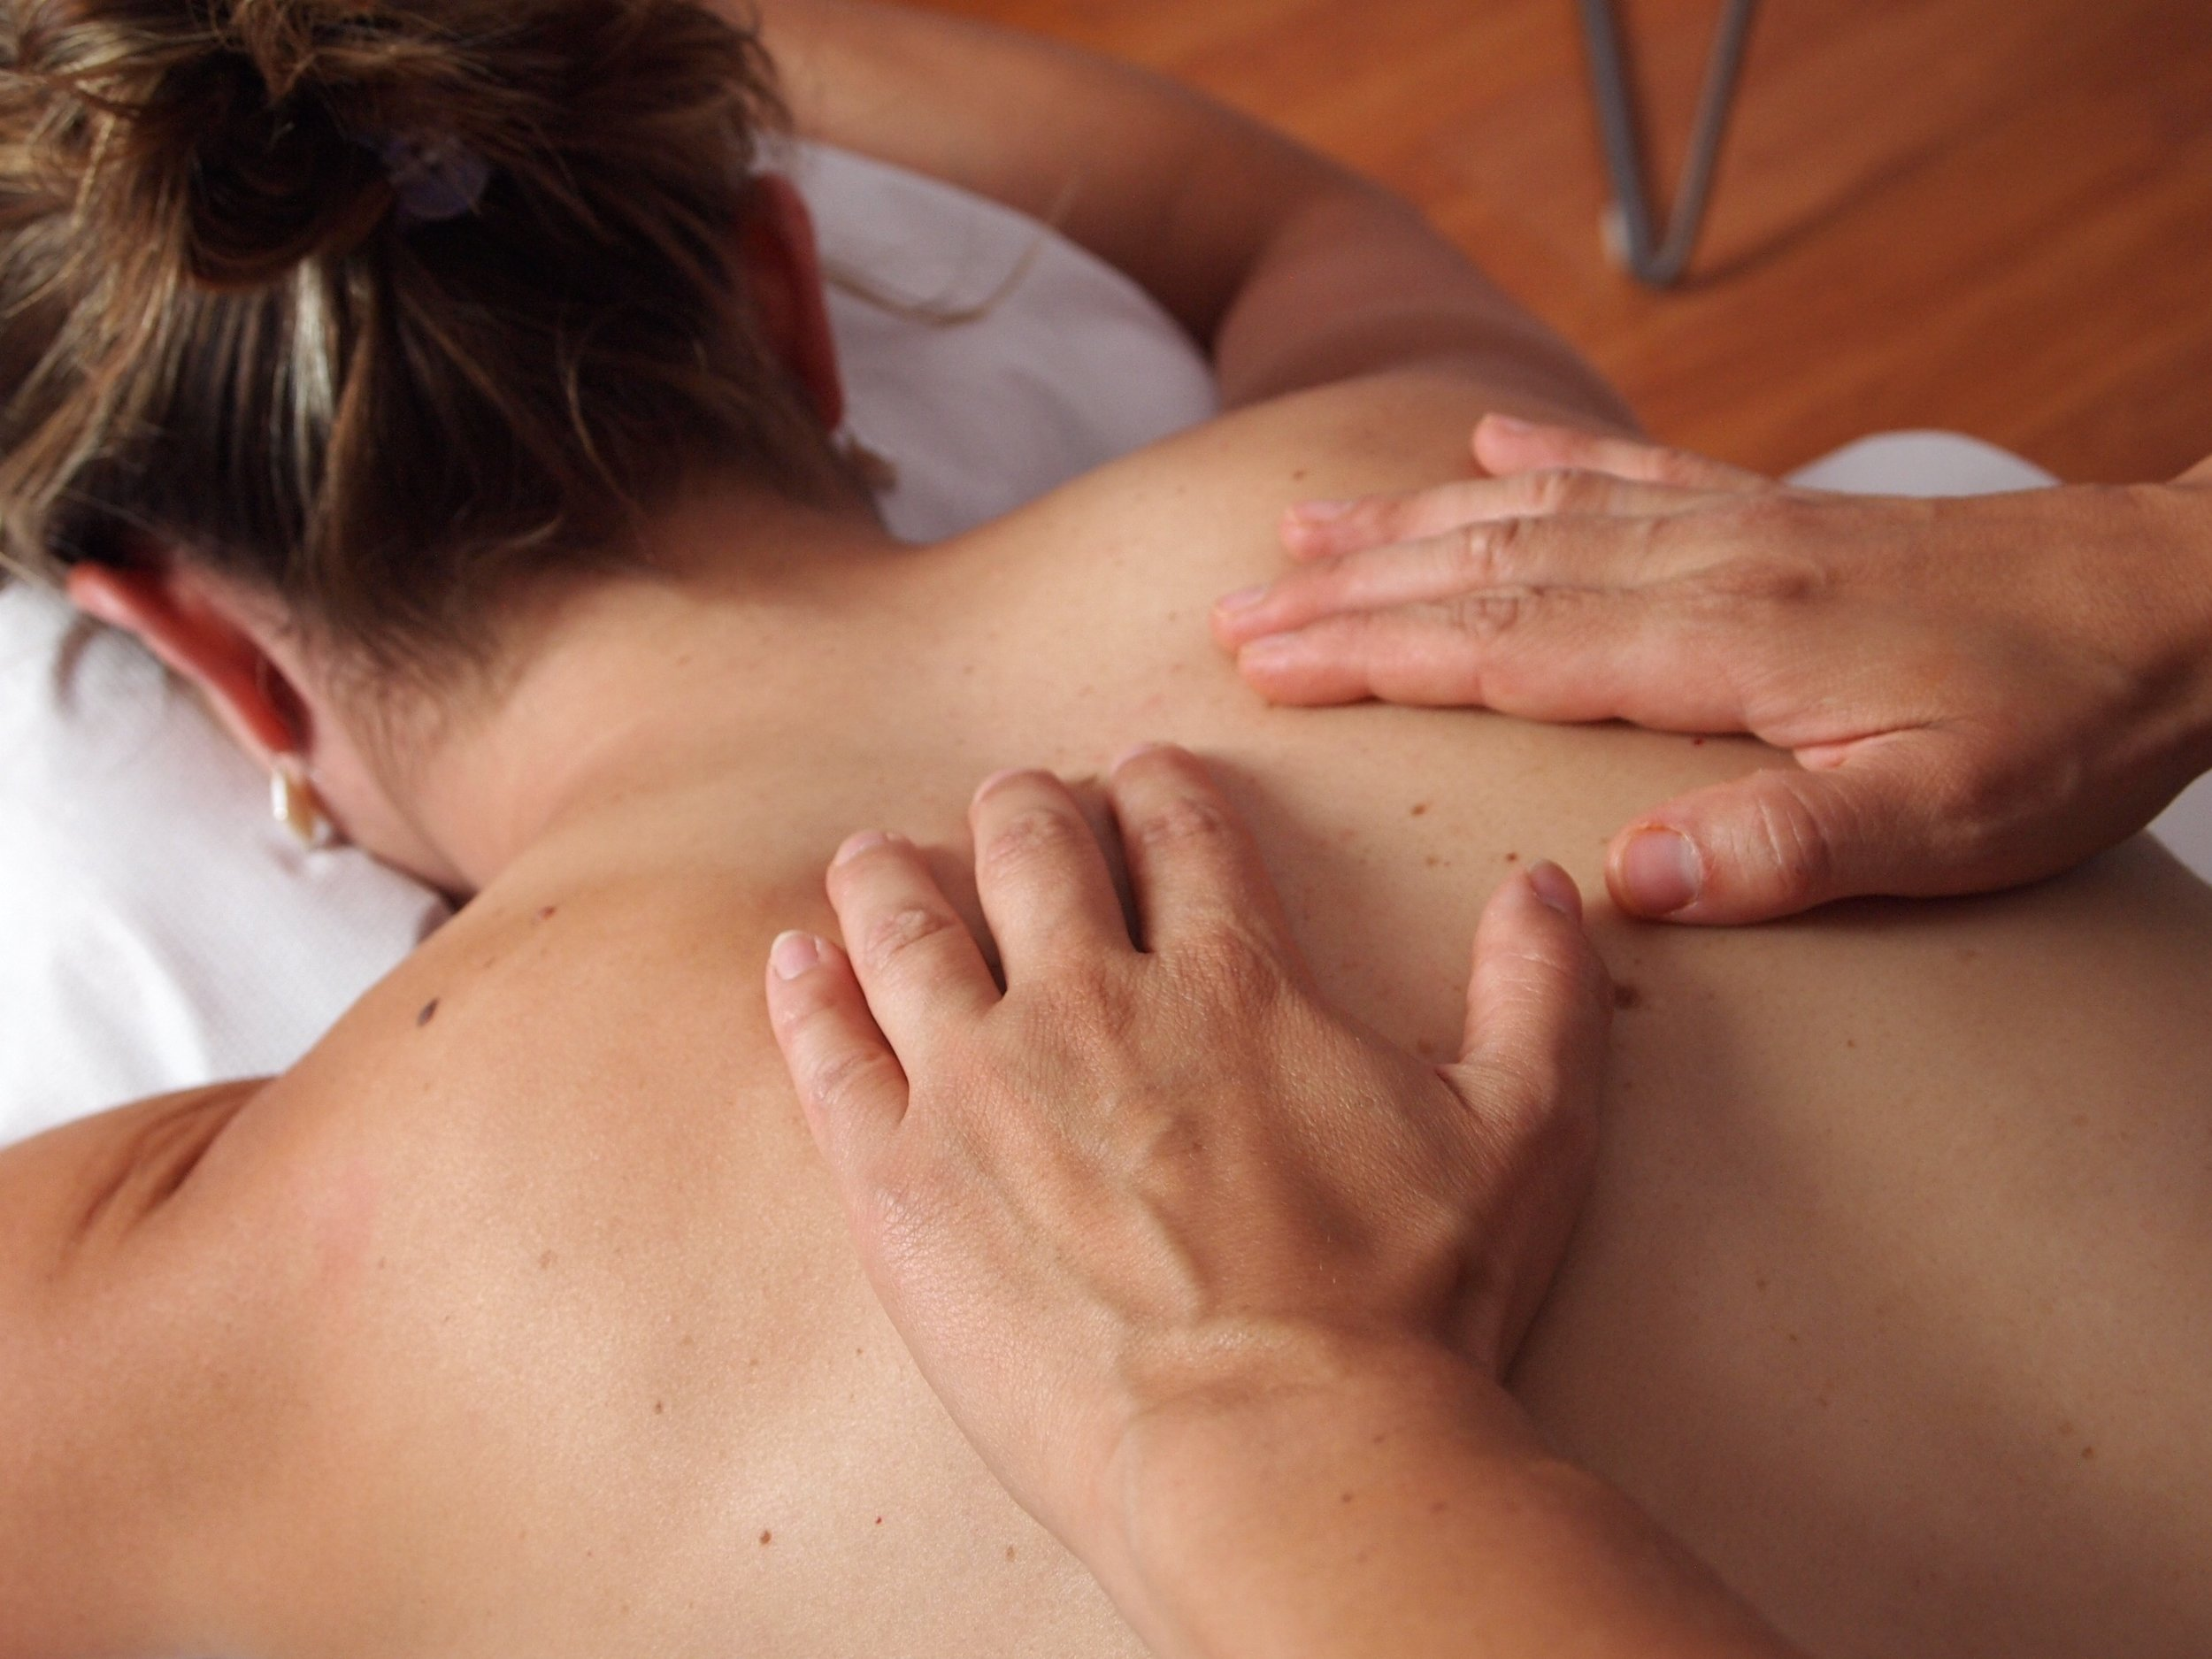 We can tailor this 2-hour private workshop to your individual needs and wishes. - These workshops are informal and fun. Usually, we begin by demonstrating to you the four basic strokes involved in Swedish Massage and how to apply them to give your partner a relaxing full body massage. Depending on your needs and interests, we can also show you Deep Tissue and Indian Head Massage techniques.No previous massage experience is necessary. Each session is tailored to your needs and gives enough time for one of you to learn how to massage the other. A repeat session can be booked to give the other person a chance to relax too!'Treat your partner' Massage Workshop gift vouchers make a wonderful present.